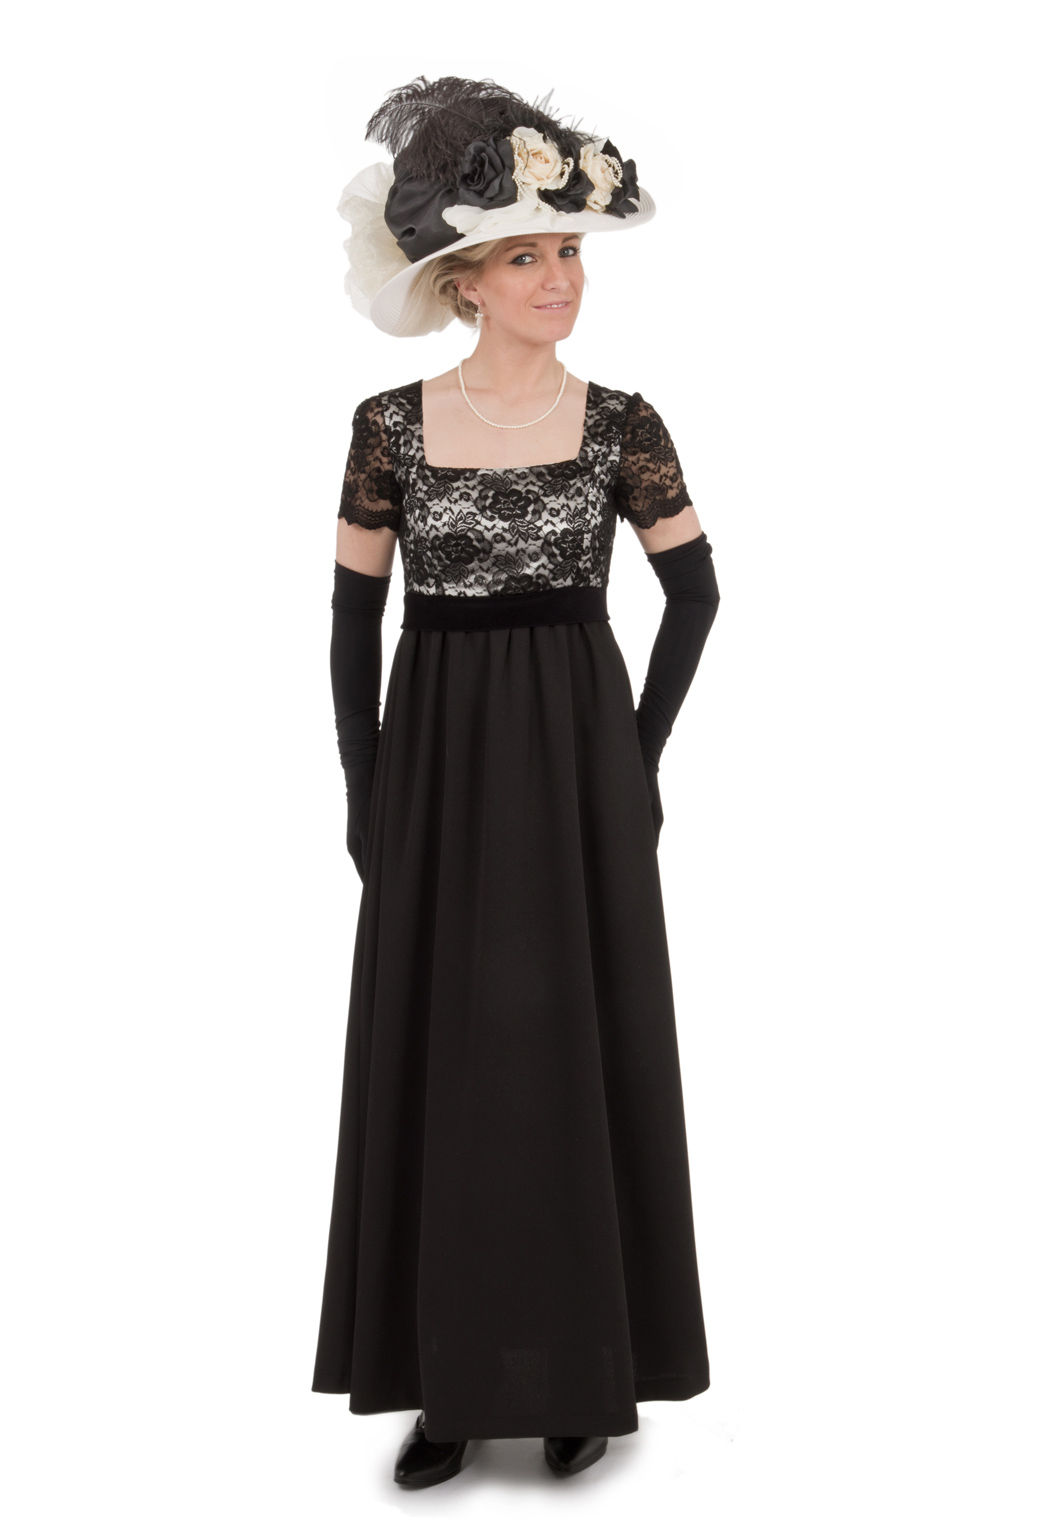 My Fair Lady Edwardian Fashions from Recollections